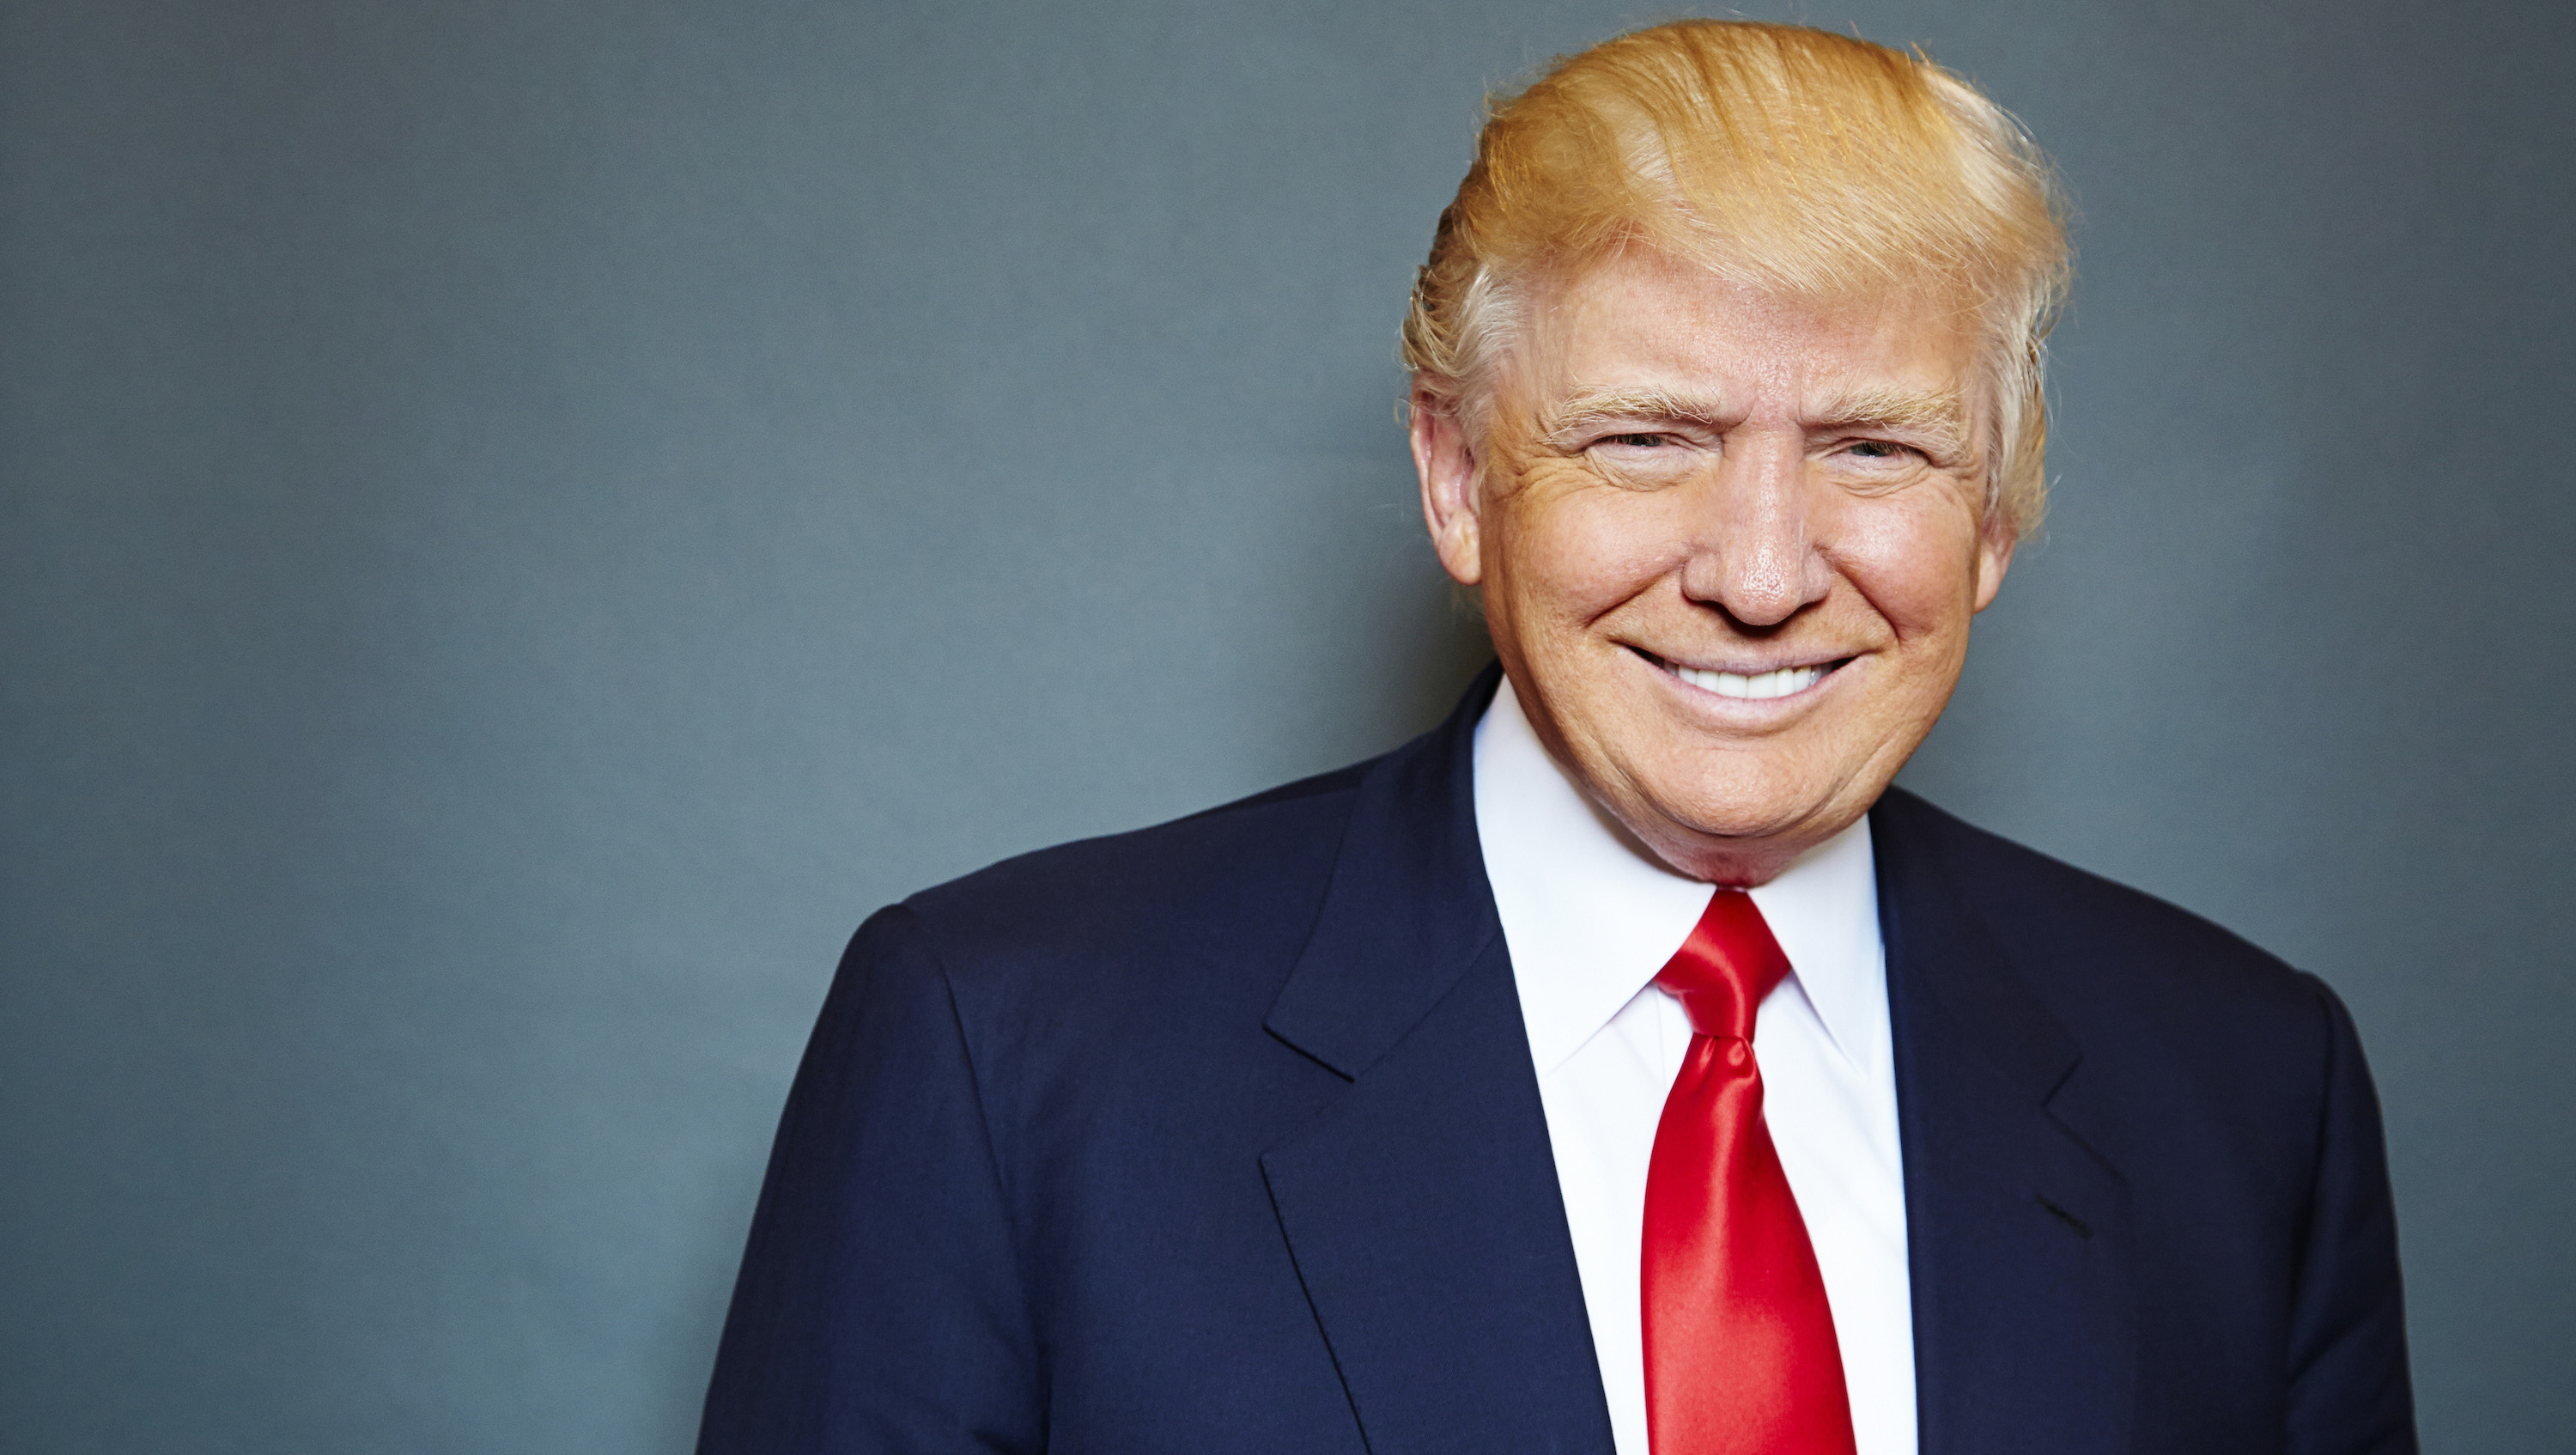 donald trump smile wallpaper 59542